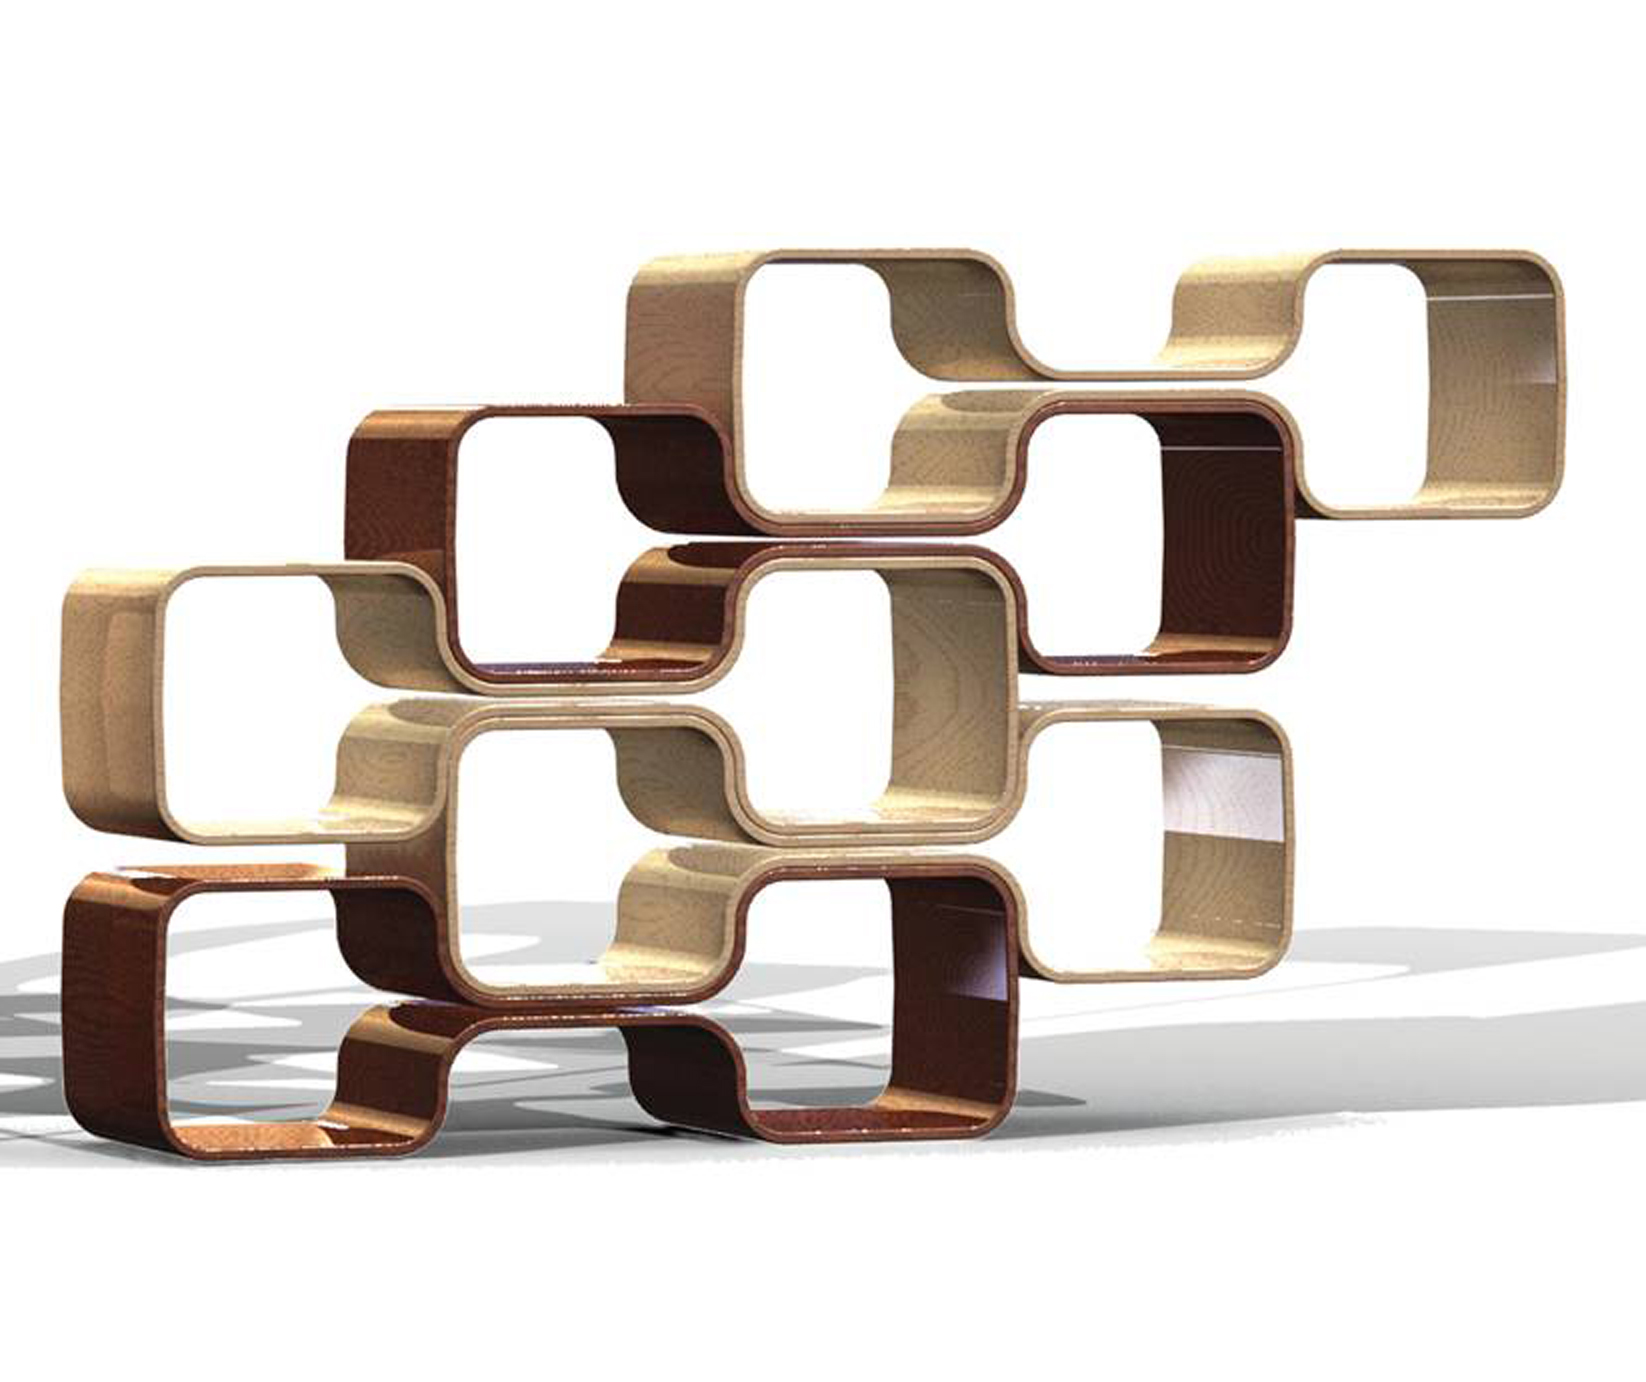 design for dwell  2011 winner   Dumbbell 2. Design for dwell  UK furniture design competition and more from